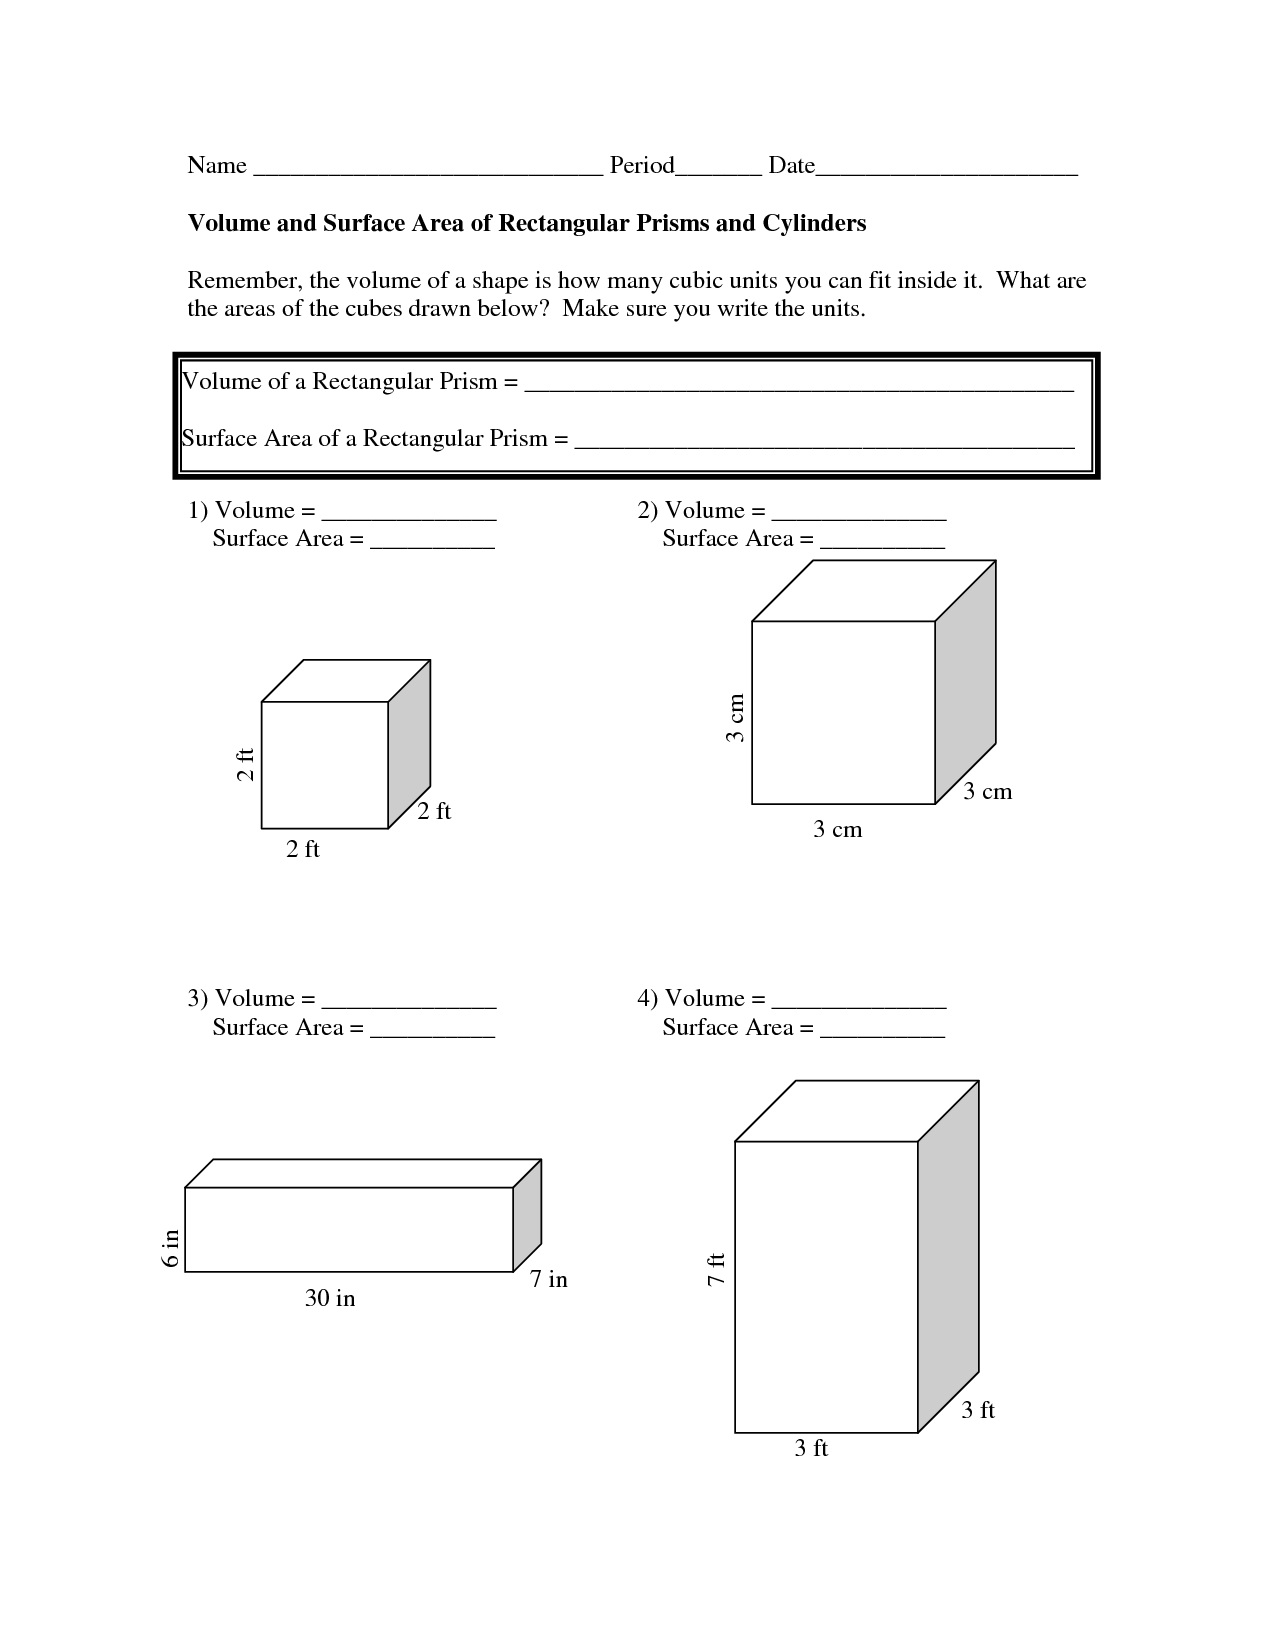 worksheet Surface Area Of Rectangular Prism Worksheet Answers volume and surface area worksheets worksheets